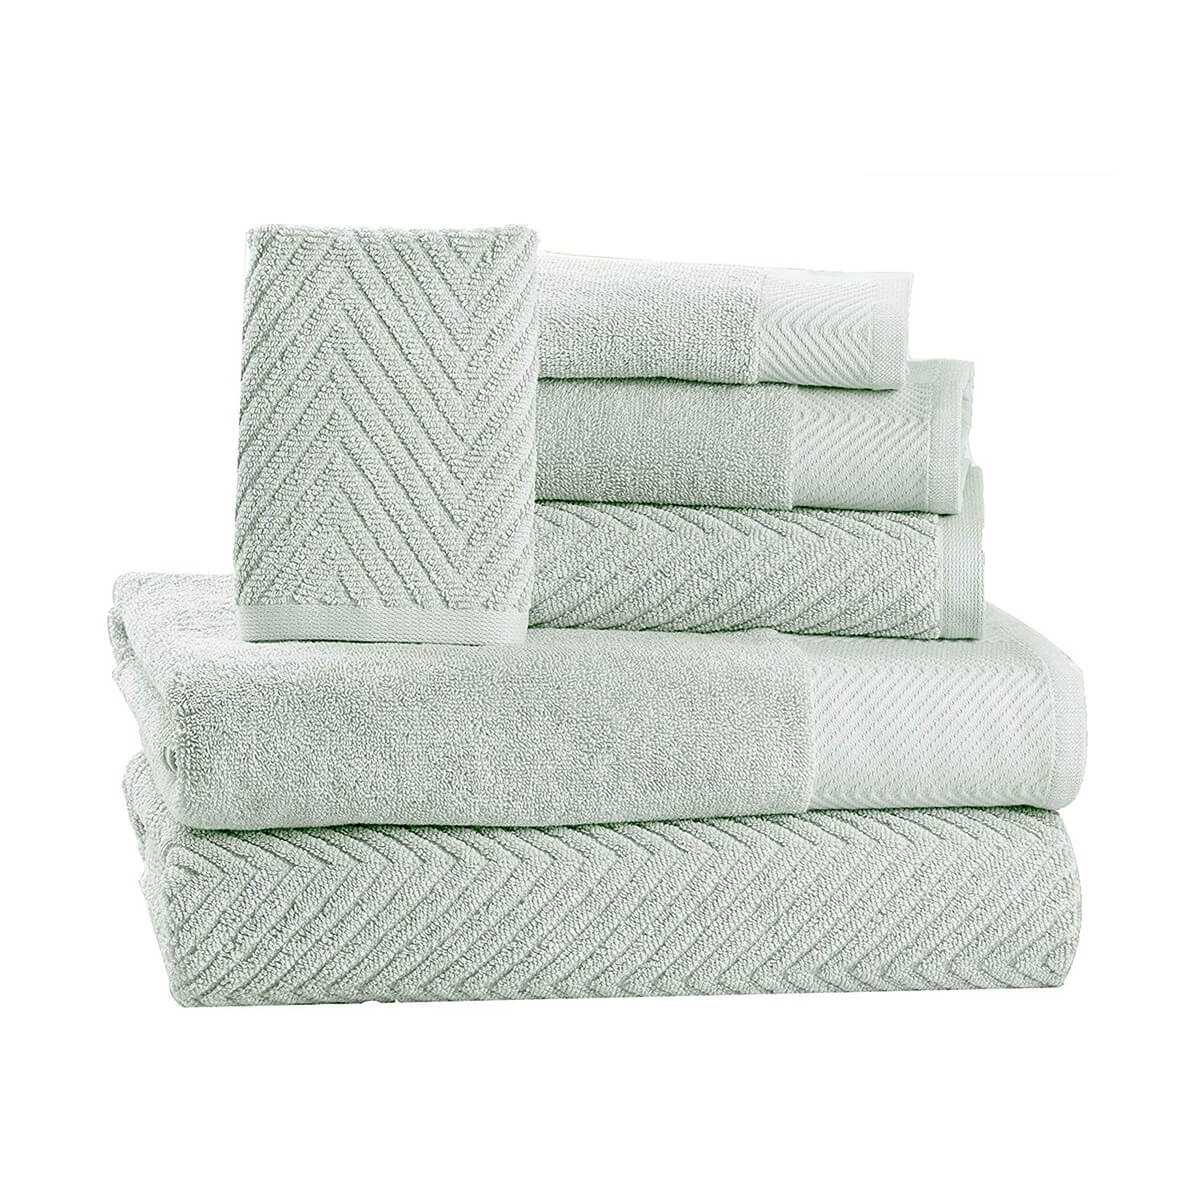 6 Piece Premium Cotton Bath Towels Set by Isabella Cromwell